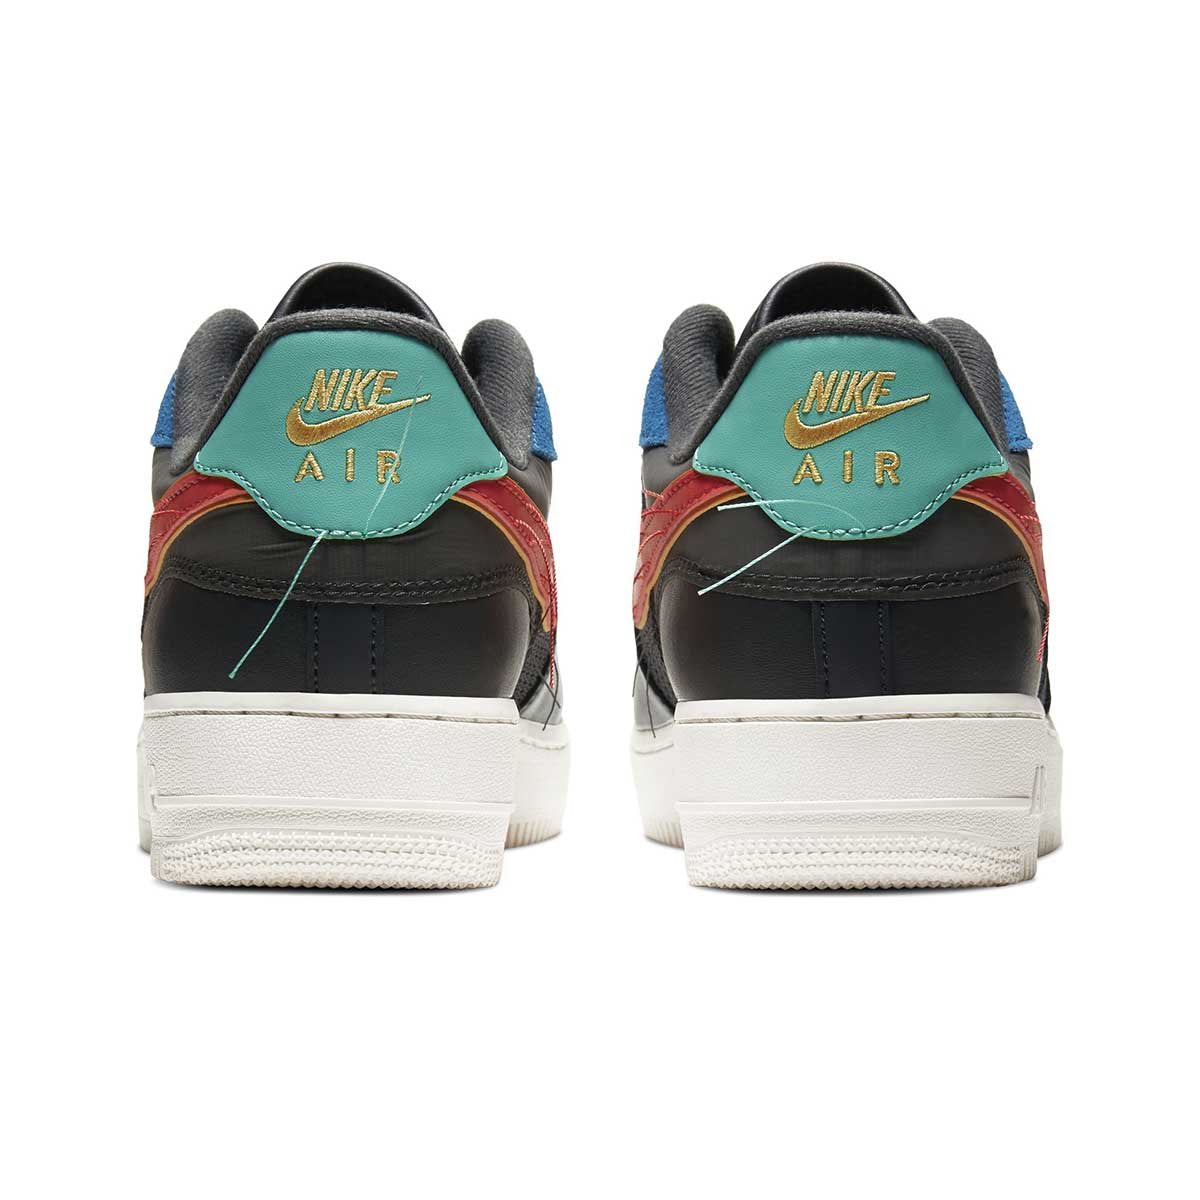 Men's Nike Air Force 1 Low Black History Month